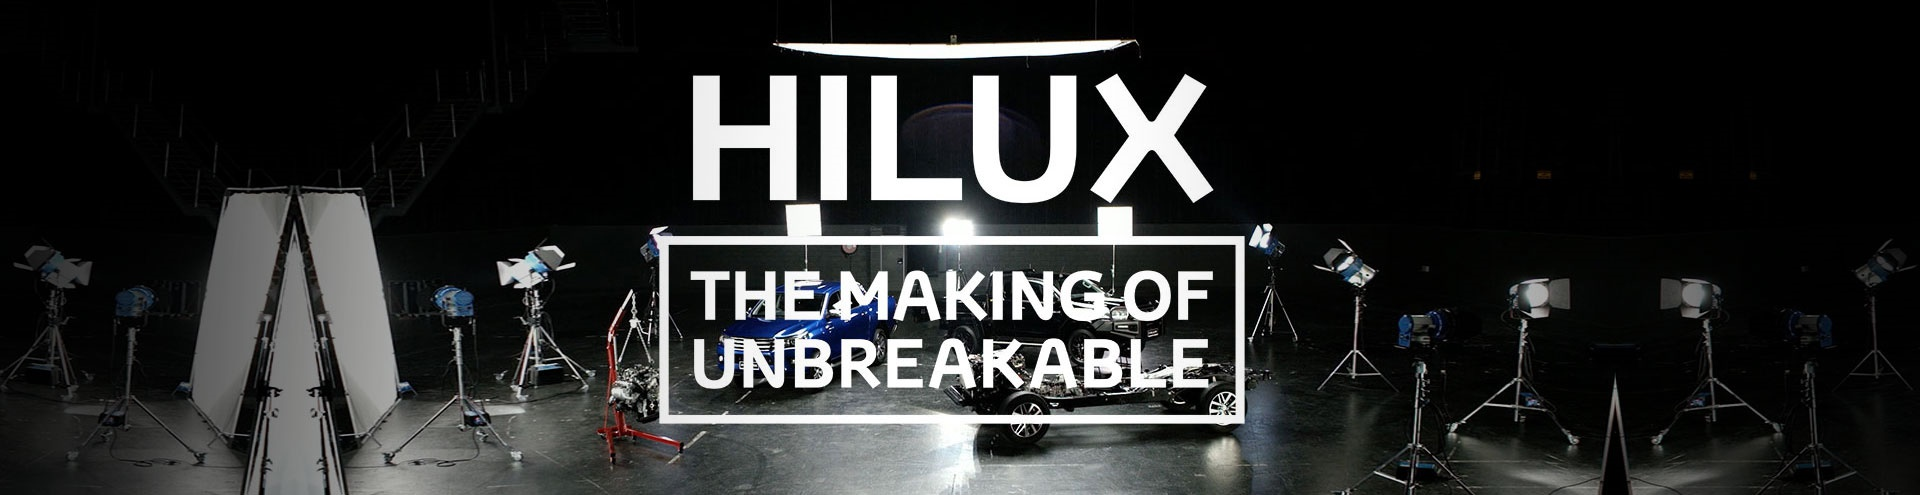 HiLux - The Making of Unbreakable